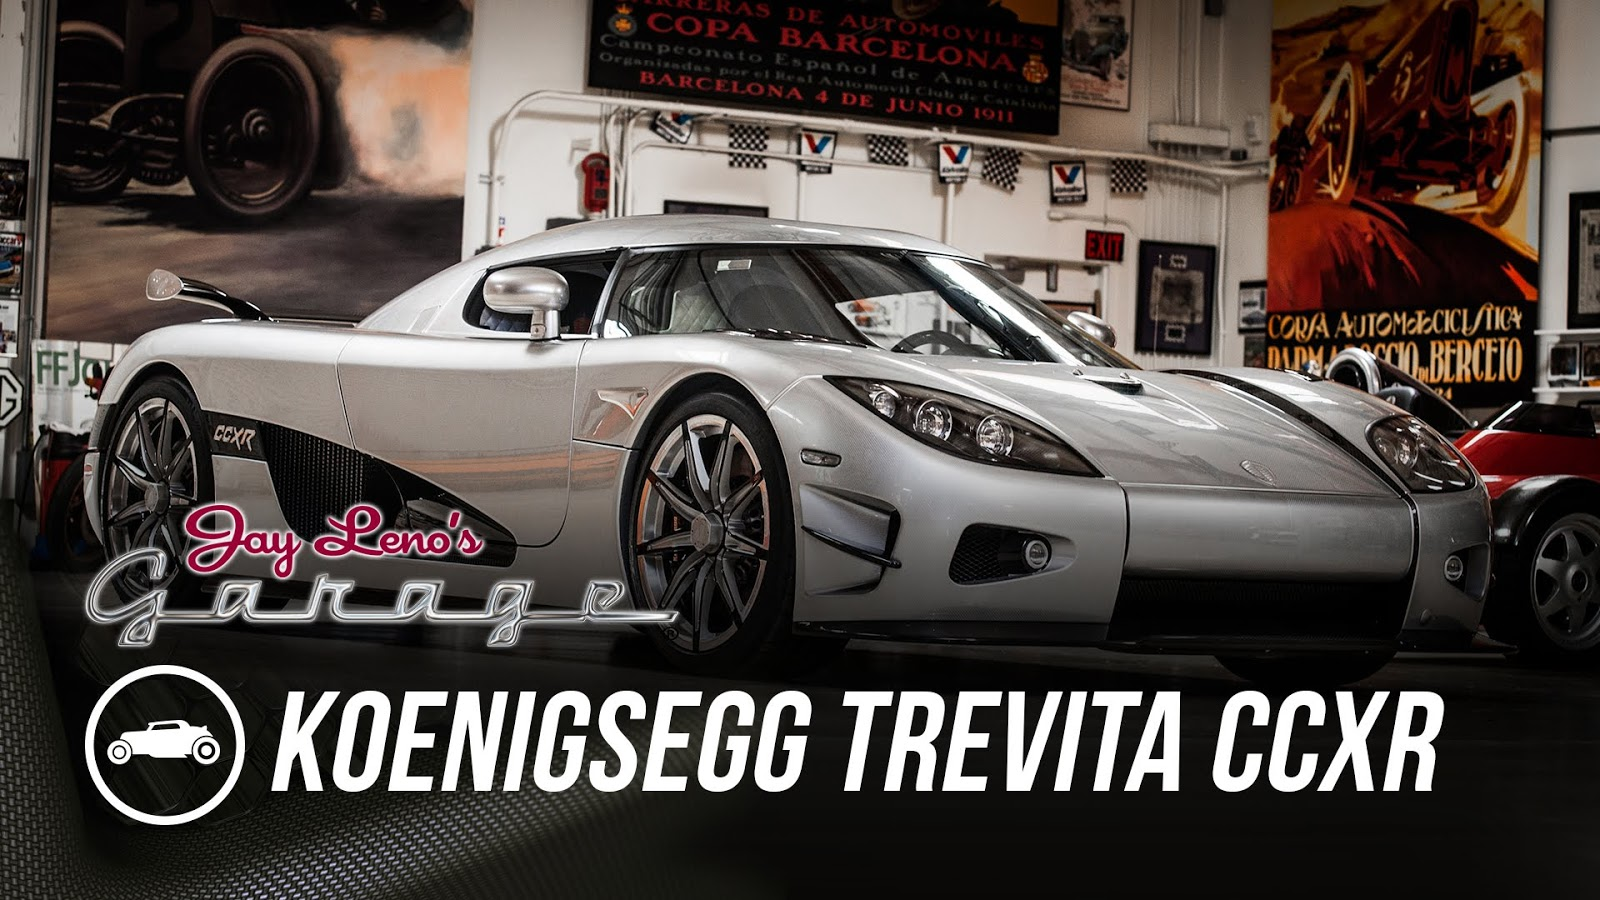 Koenigsegg CCXR Trevita Supercardrenaline Free Full HD Wallpaper